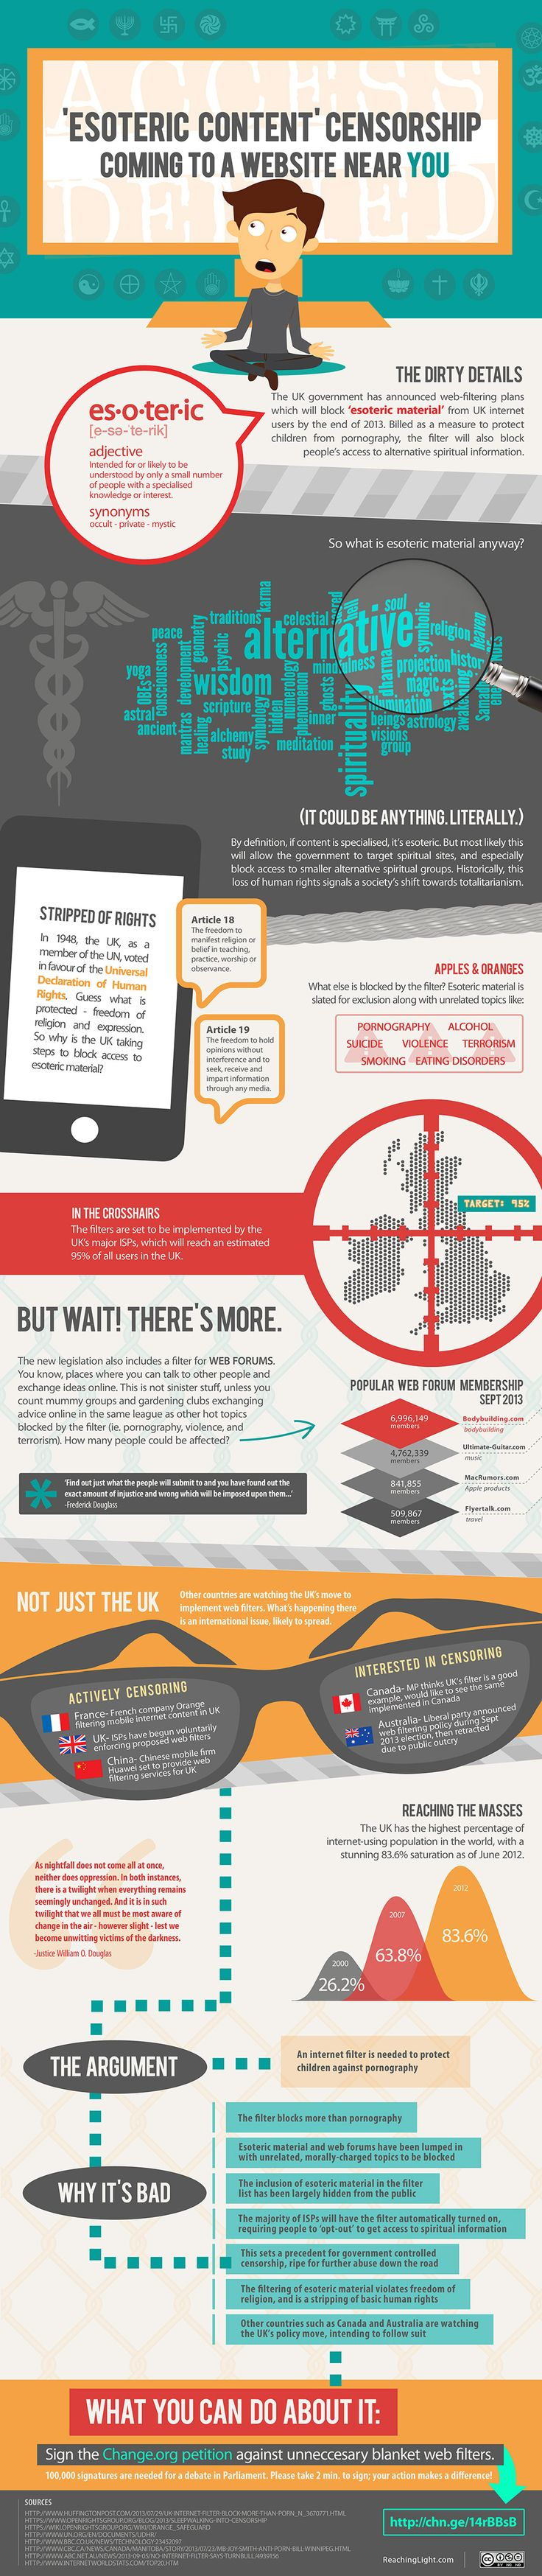 Infographic: UK Filter to Block 'Esoteric Content' - Worldwide Implications - Reaching Light